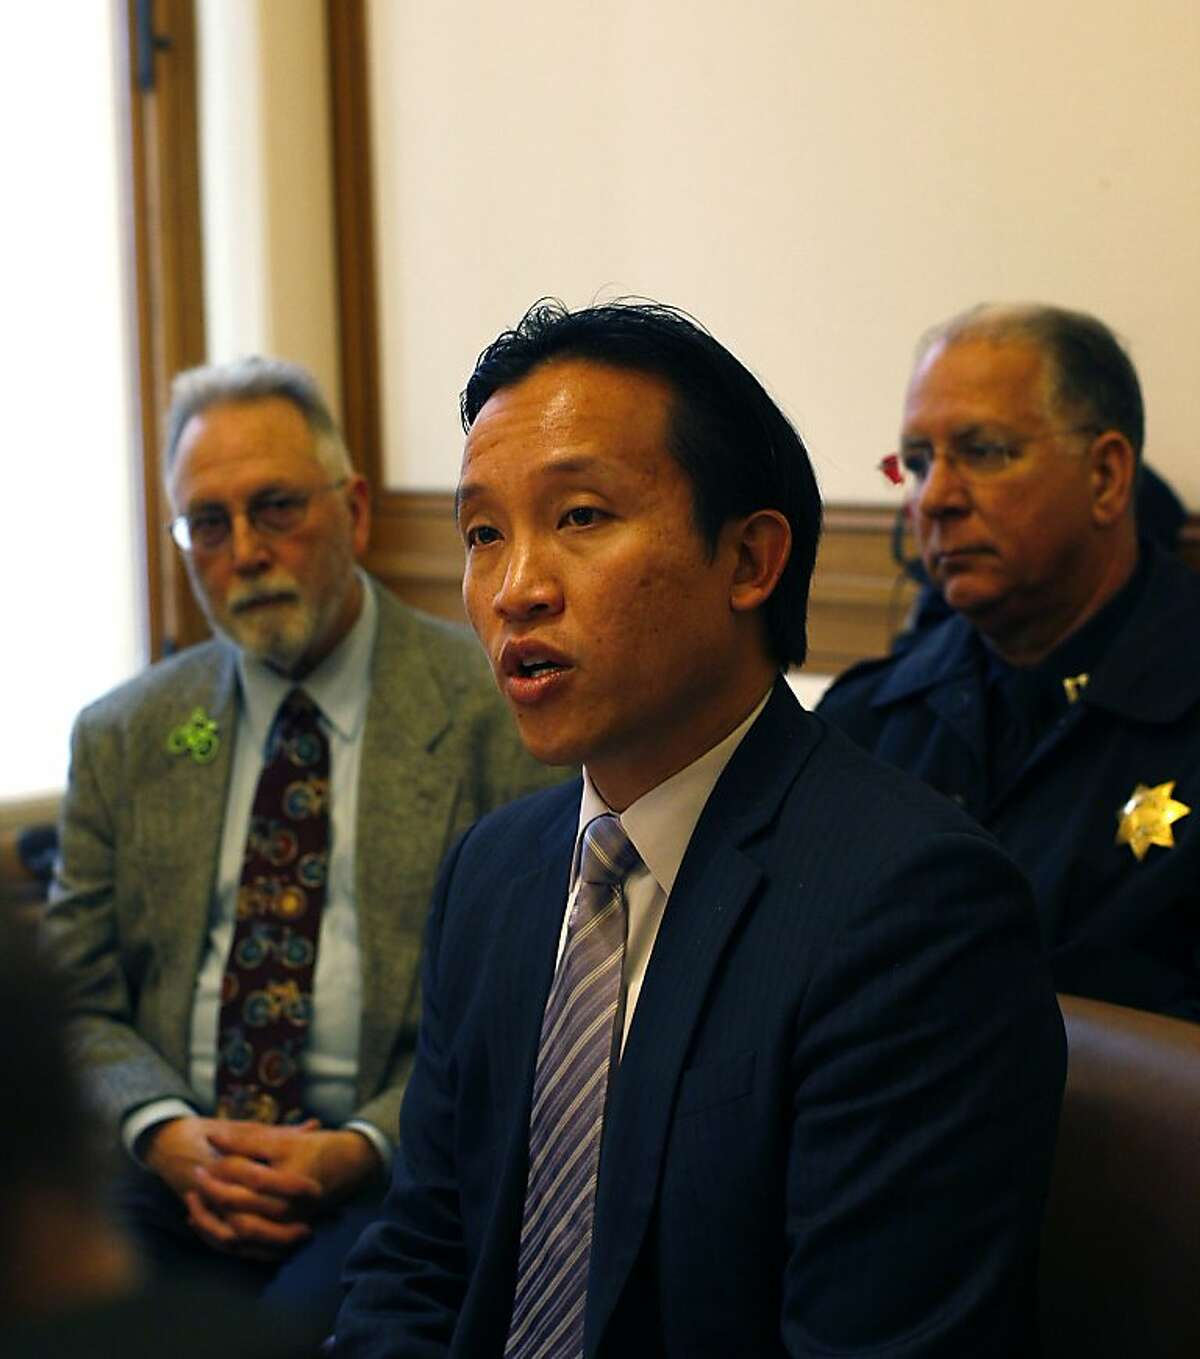 Board of Supervisors president David Chiu, center, with chair of the bicycle advisory committee Bert Hill, left, and Captain Al Casciato, of the SFPD, talks about San Francisco's New Street Safety Program at a meeting between partners of the program and the media at City Hall, San Francisco, Calif on April 10, 2012.